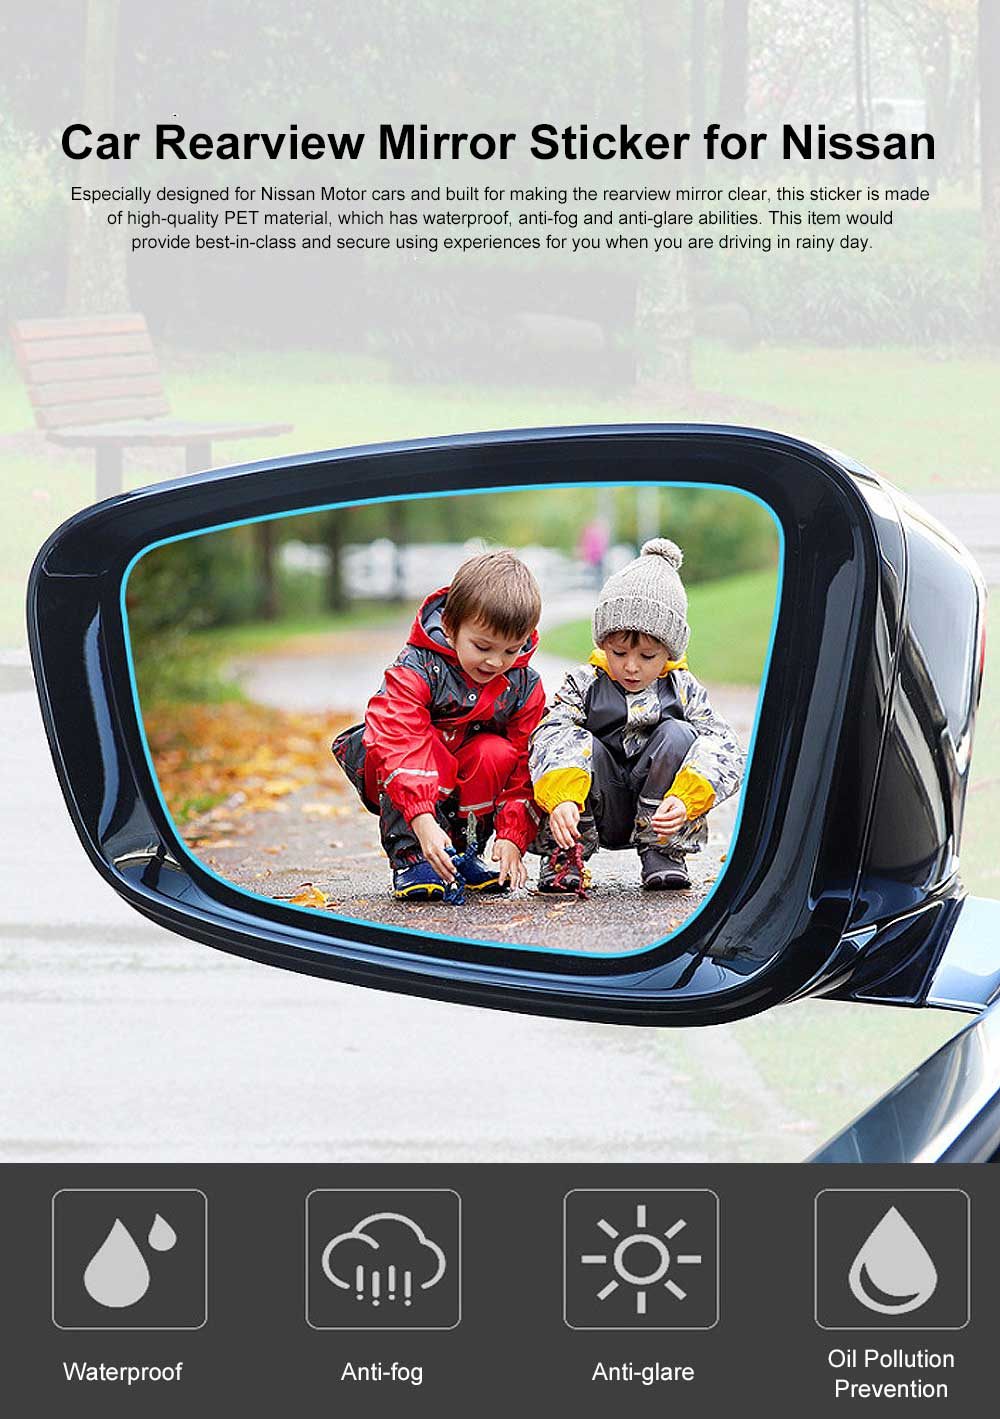 HD Waterproof Anti-fog Mirror Sticker for Car Rear View, Anti-glare Rain-proof Automobile Mirror Pad for Nissan Motor 0